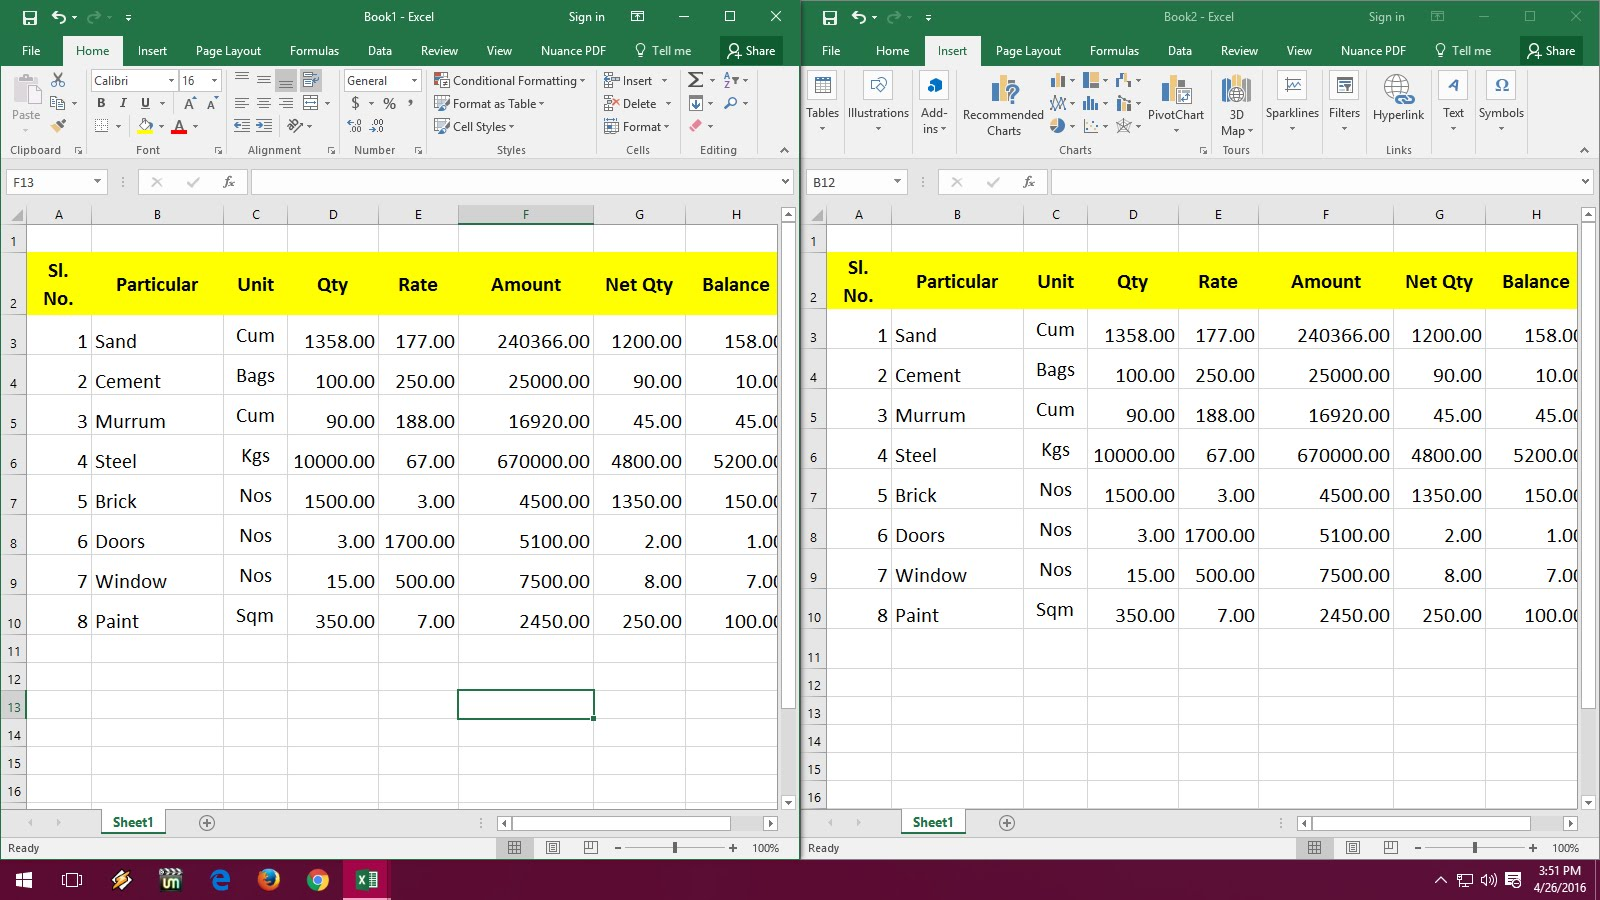 How To Make Excel Sheet Print With Lines